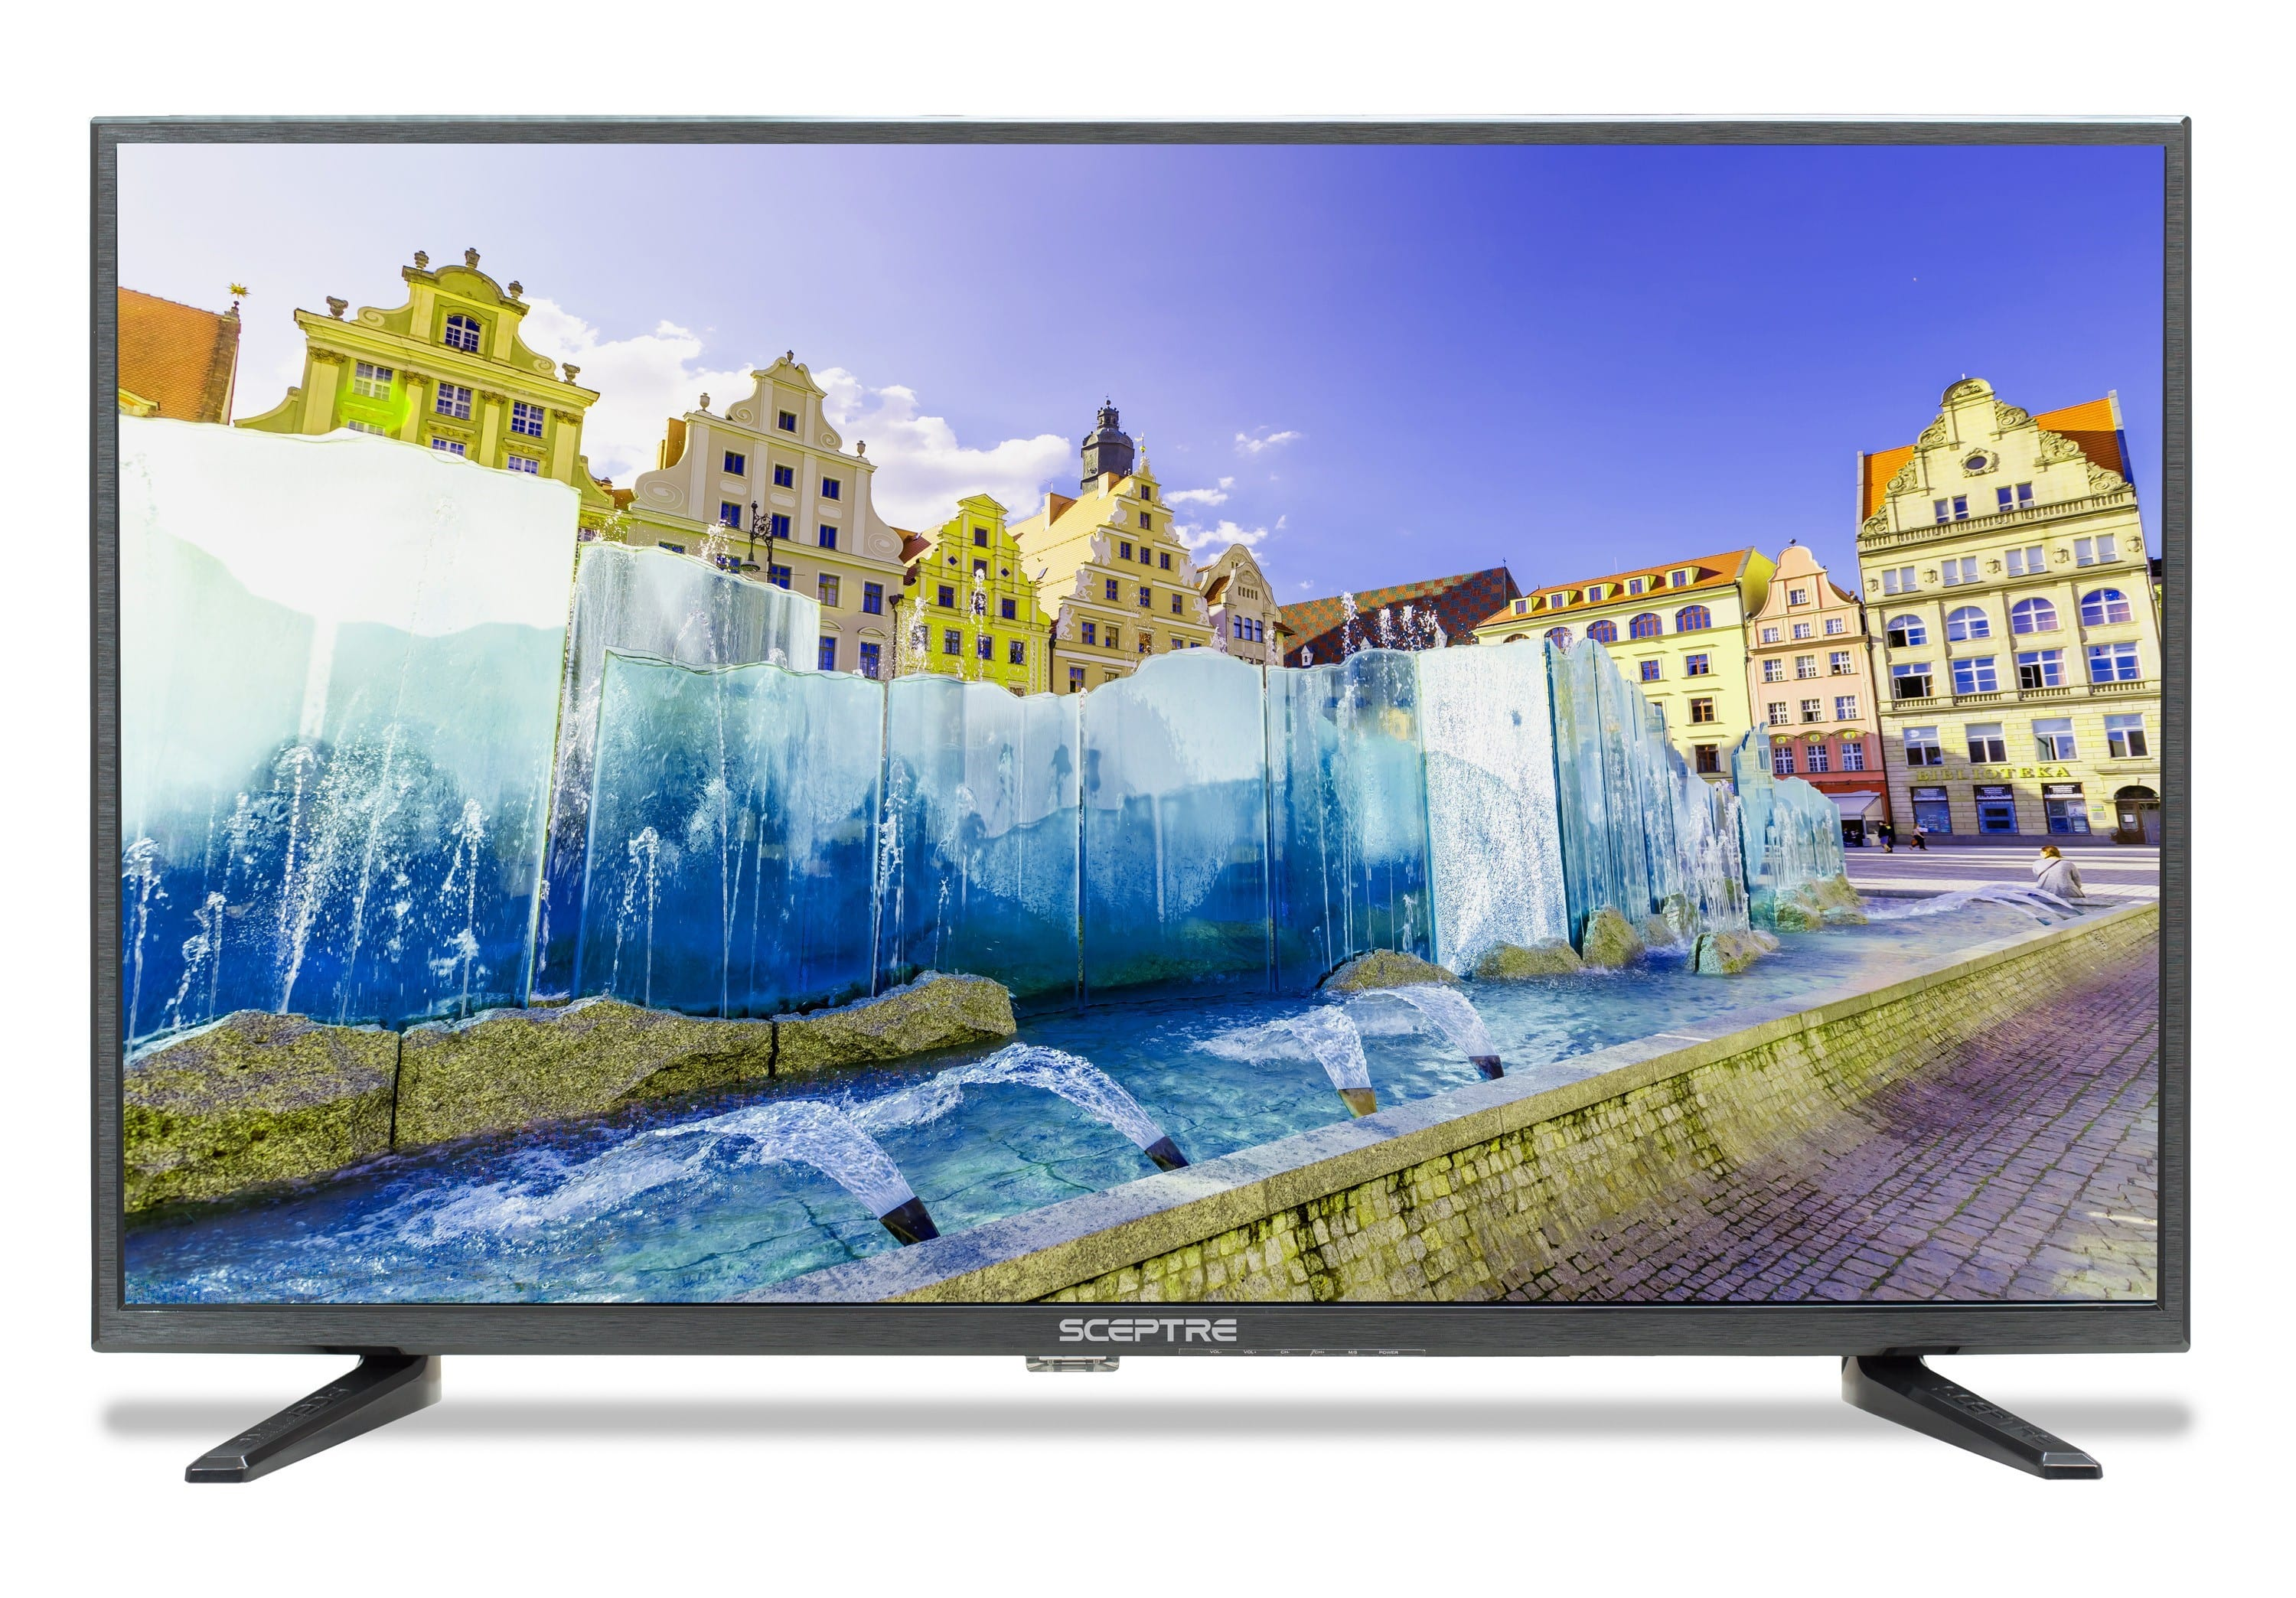 "Sceptre 32"" Class HD (720) LED TV $89.99"